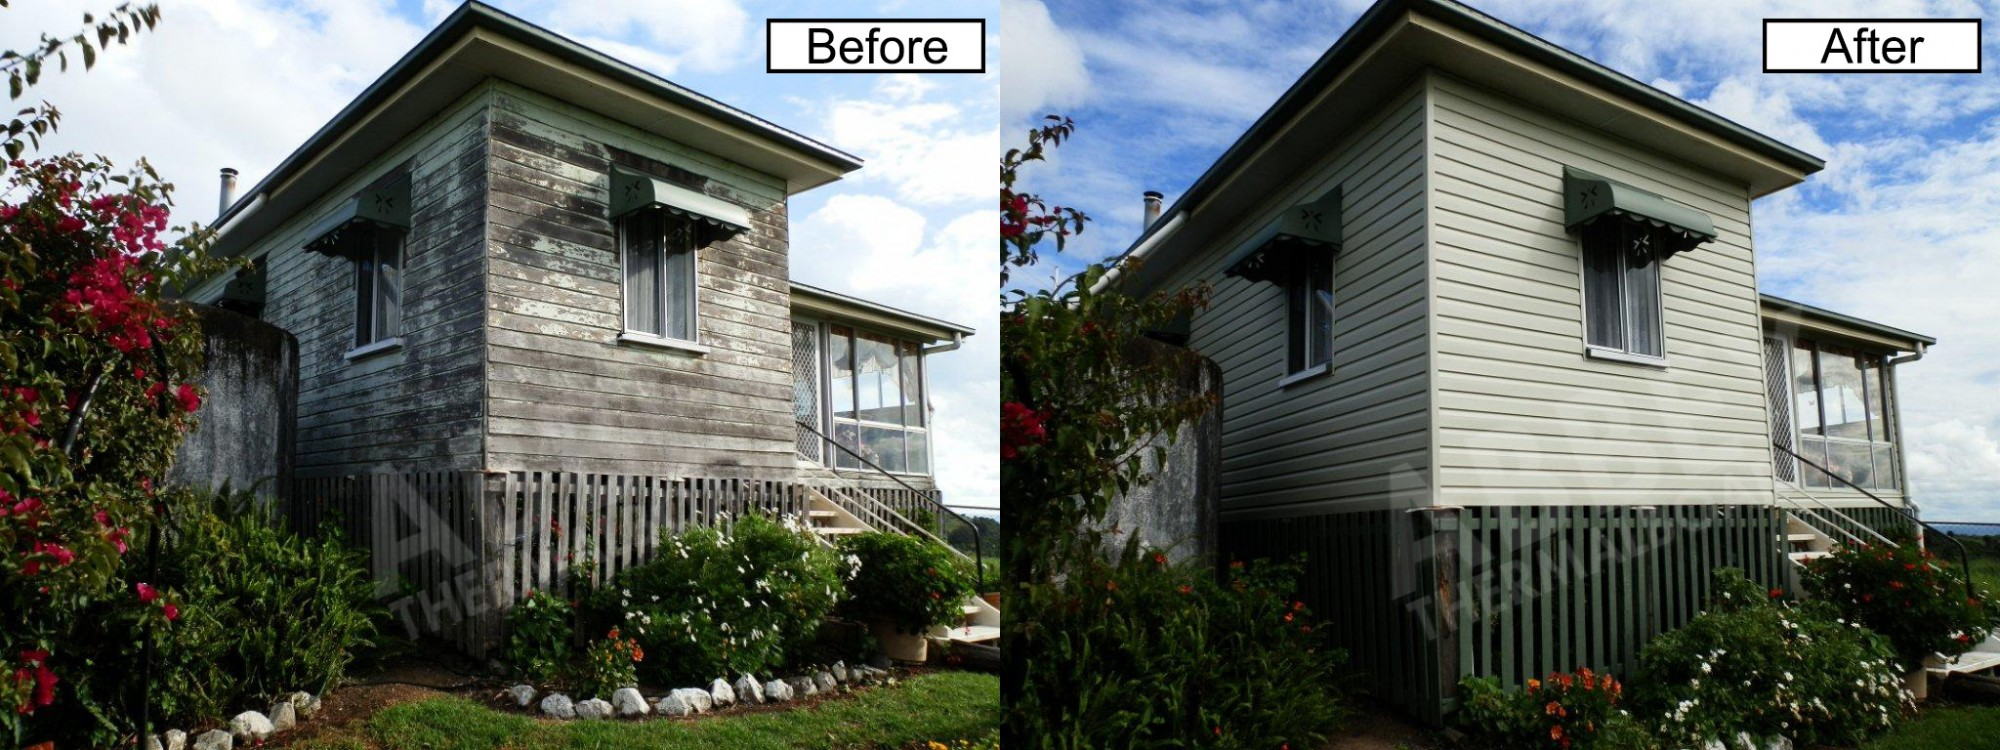 A cladding job before and after highlighting new vinyl cladding.